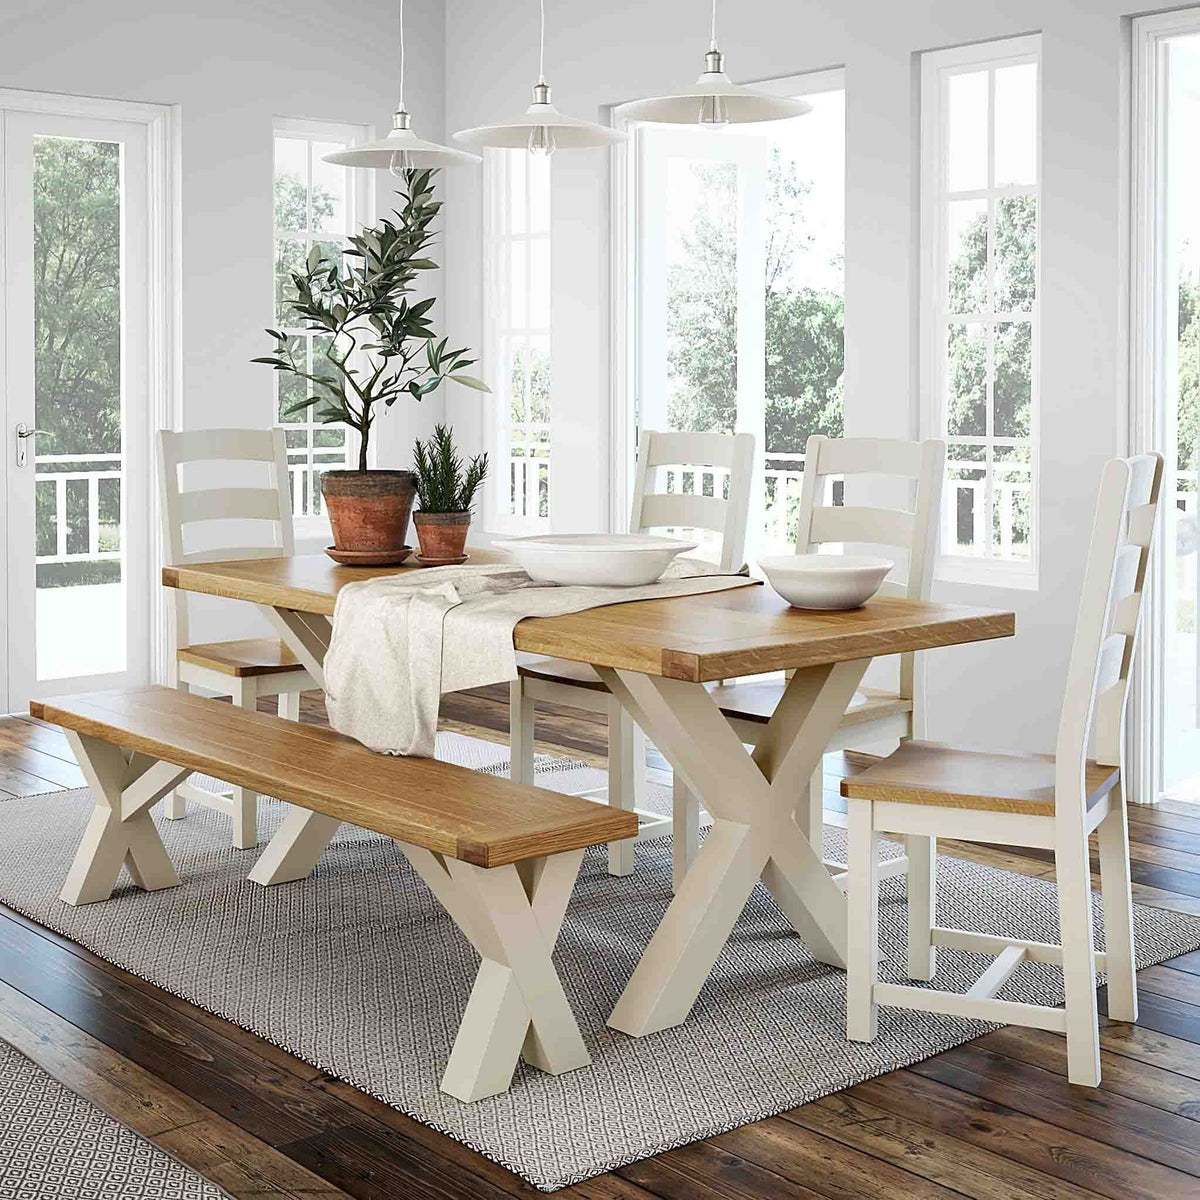 Decorative Kitchen Table Set image with The Daymer Cream Wooden Cross Bench